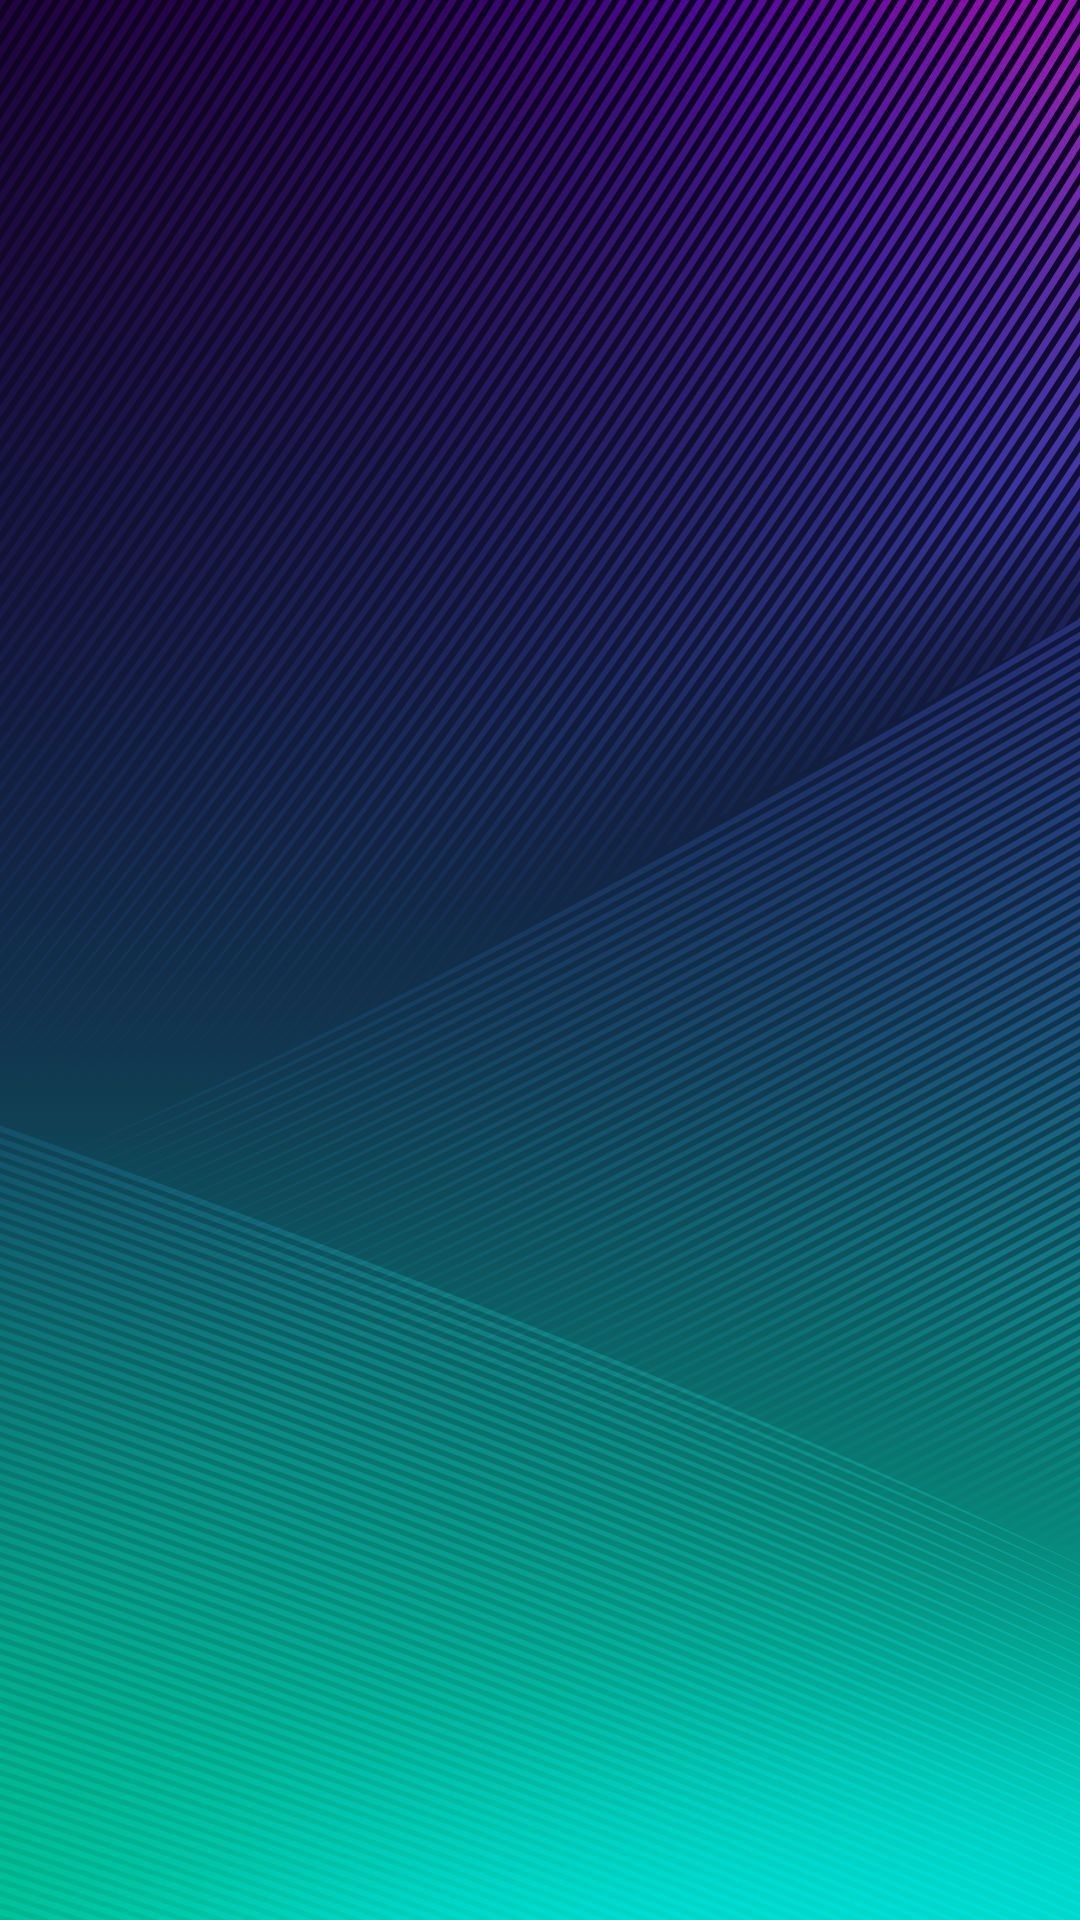 1080x1920 Blue Green Color Fade iPhone 6 Wallpaper Awesome Gra Nt Green Purple ...